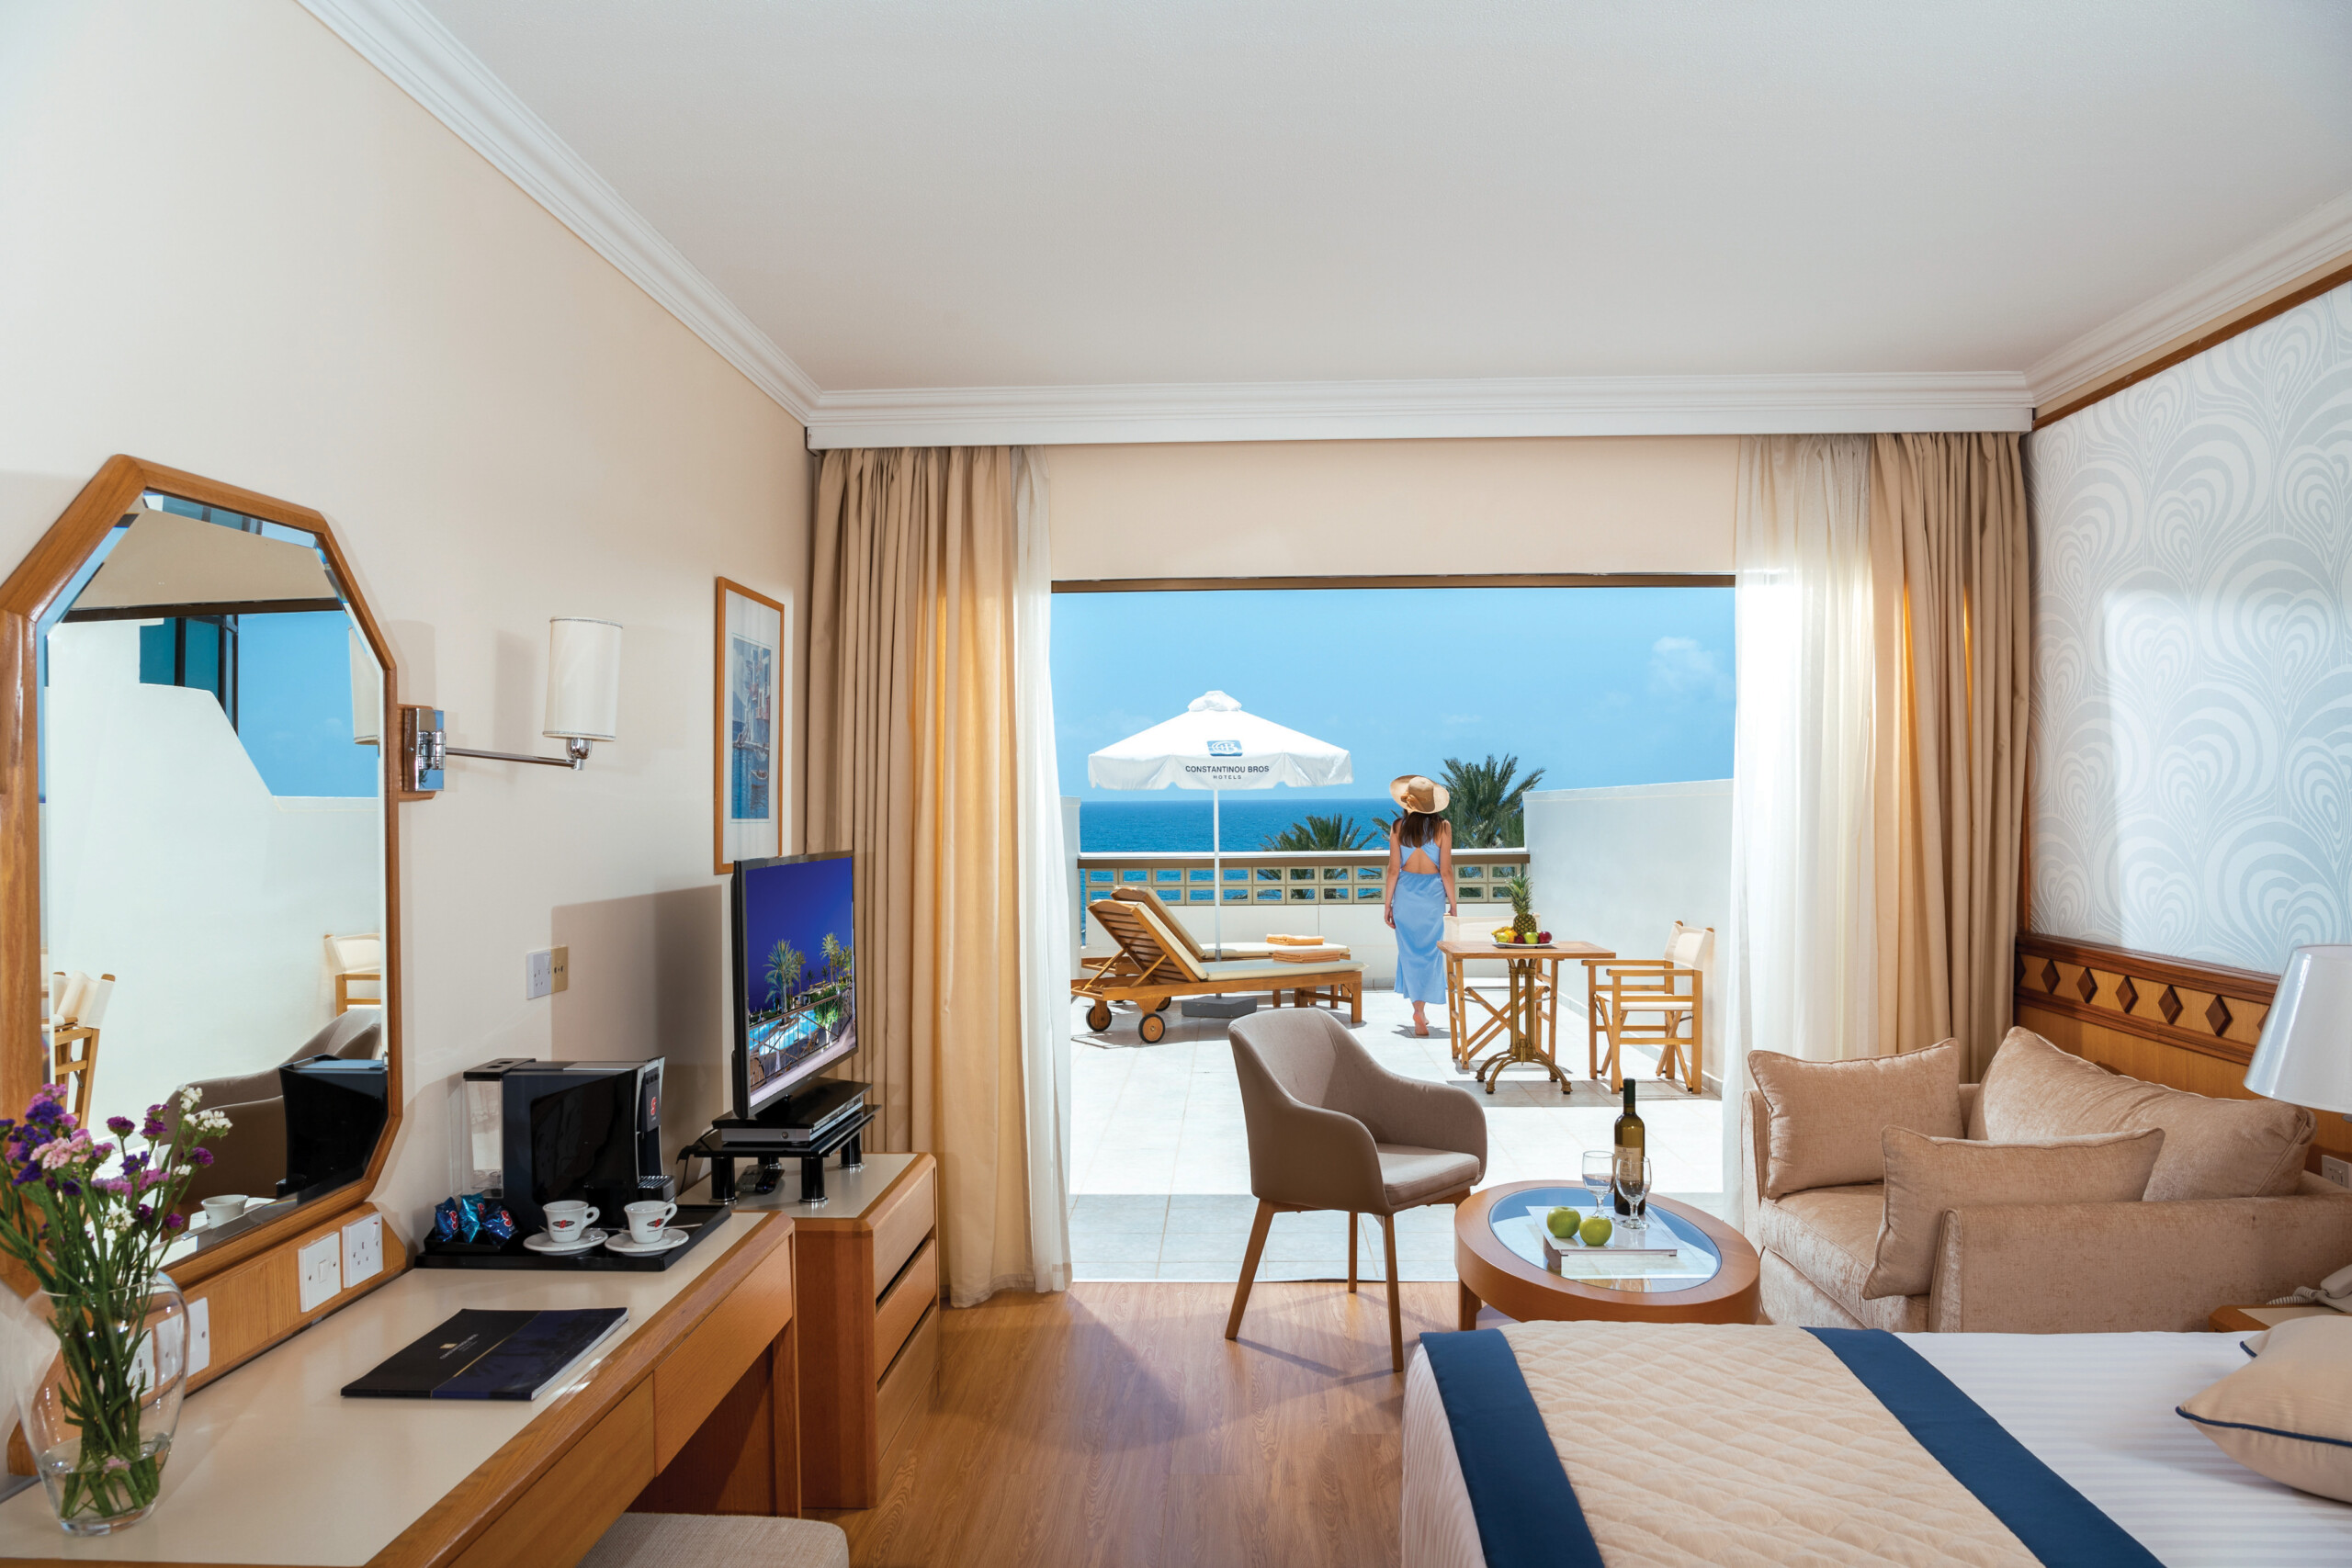 48 ATHENA BEACH HOTEL SUPERIOR DELUXE ROOM WITH TERRACE